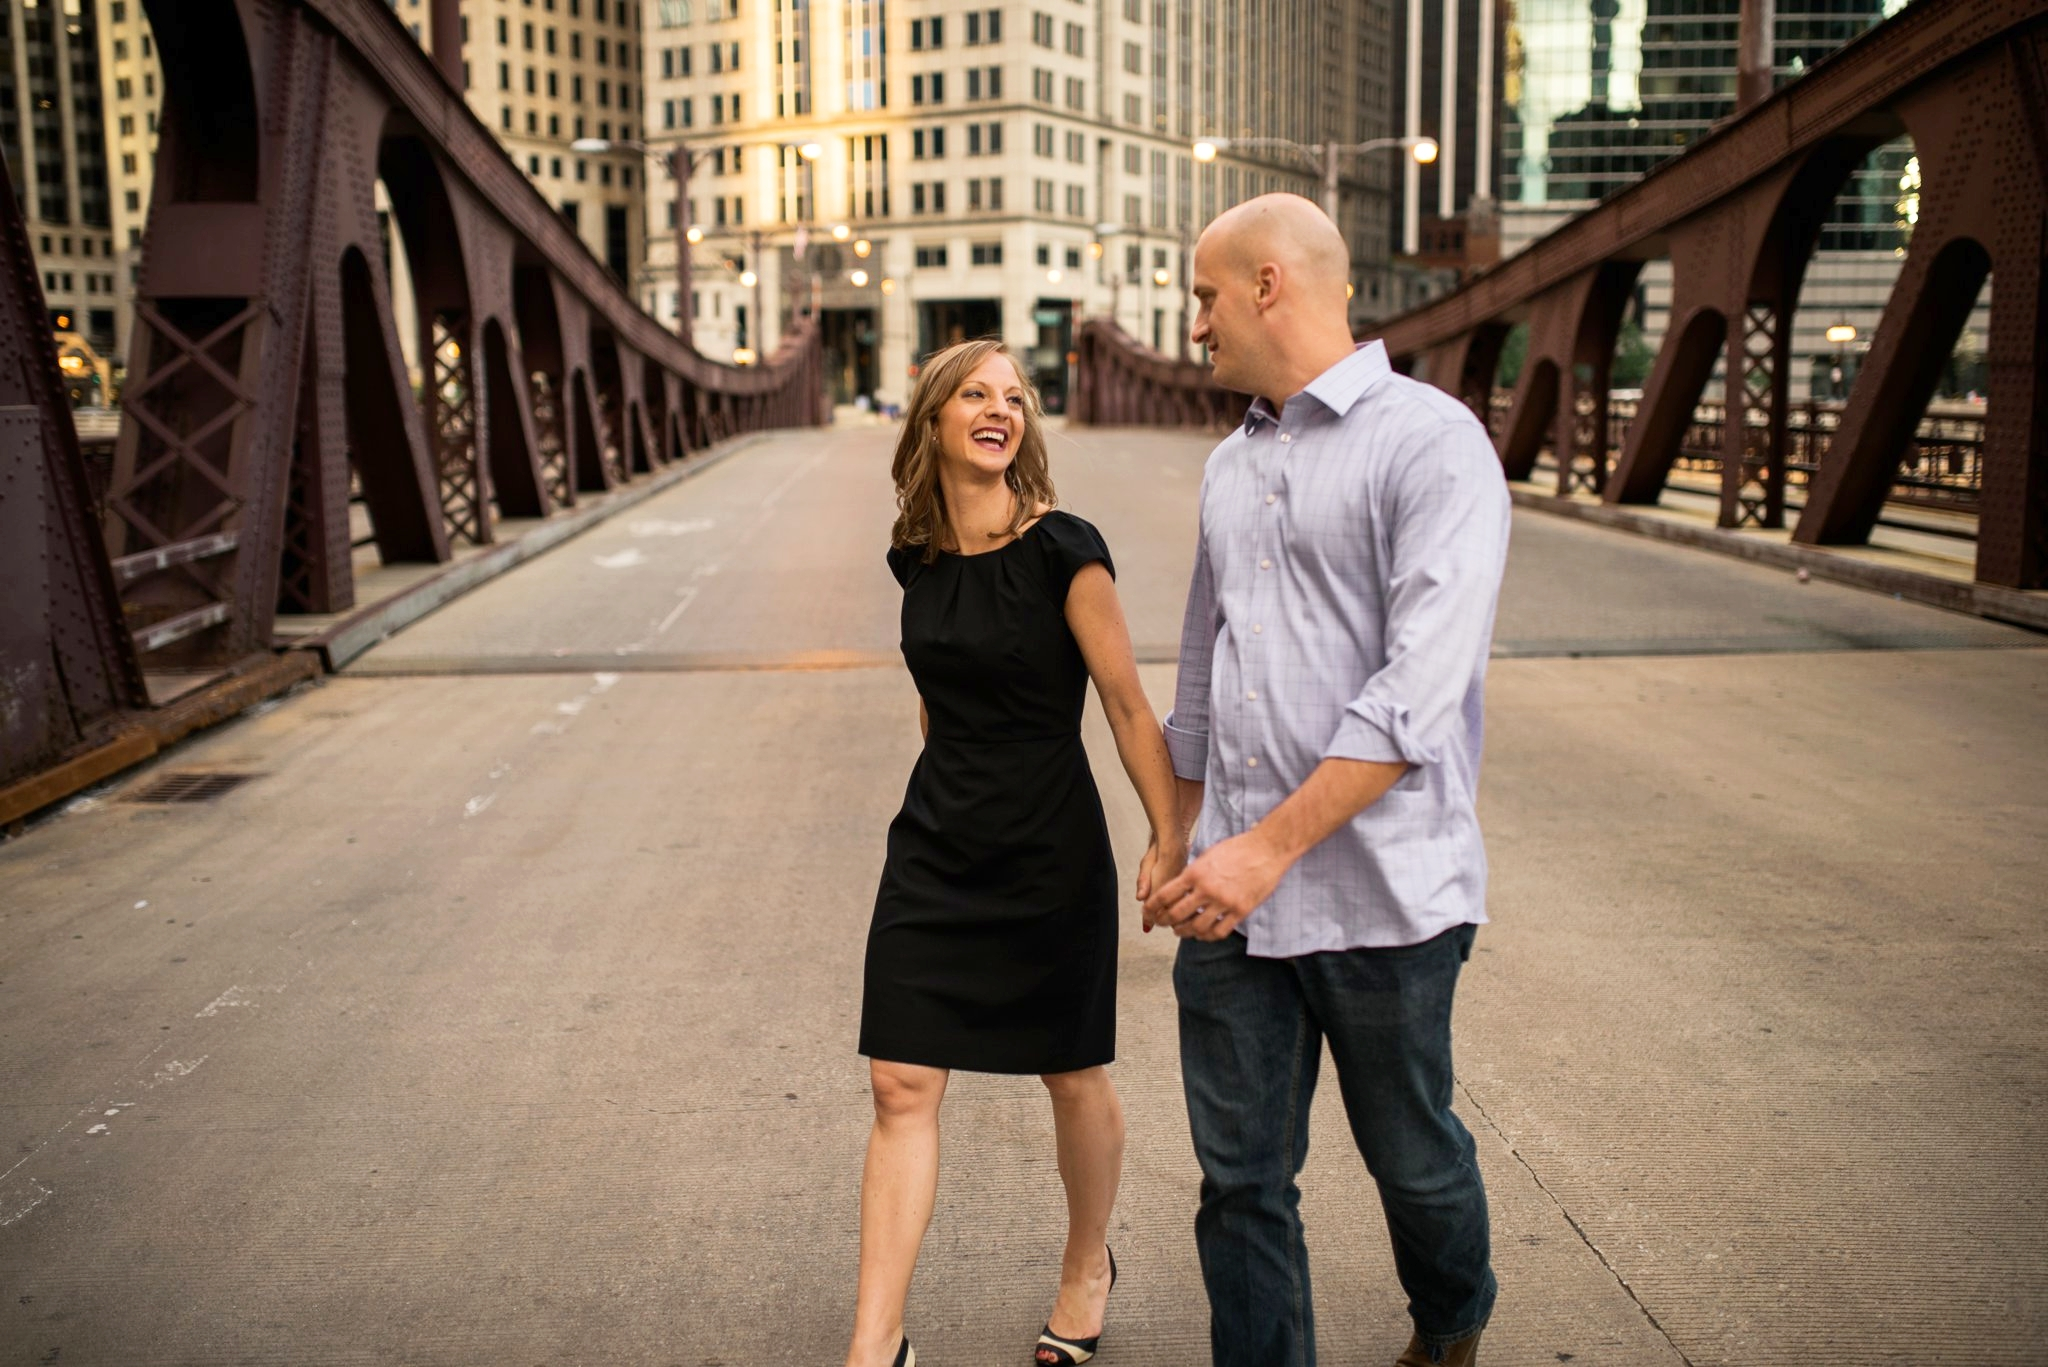 Downtown-Chicago-Loop-Wedding-Photography-032.jpg